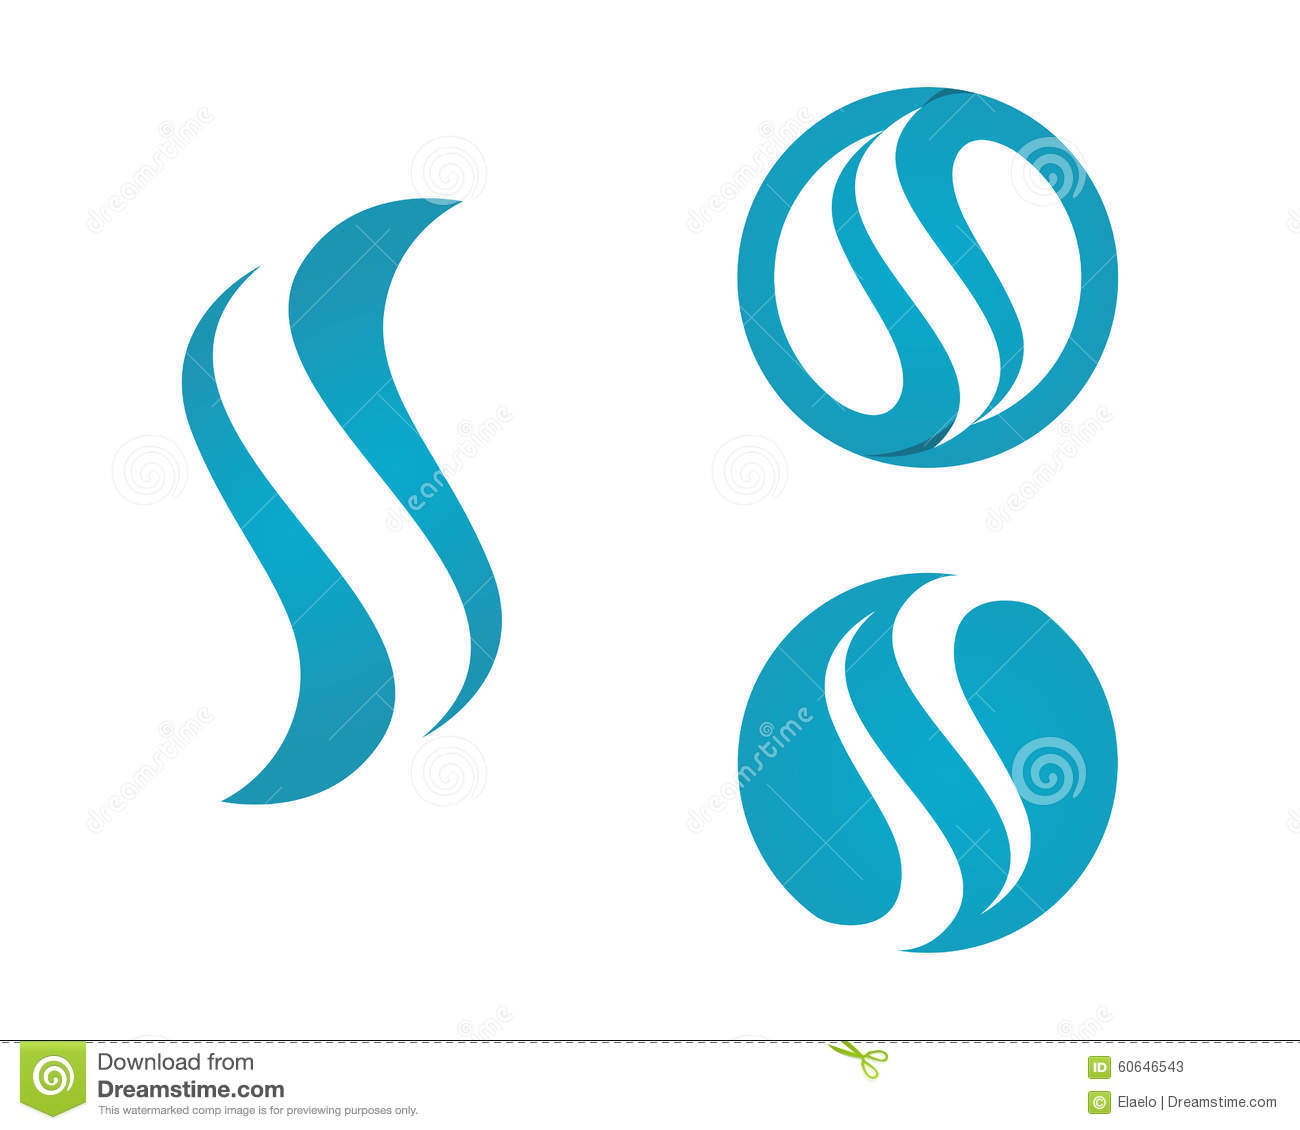 S letter and s logo stock vector image 60646543 for S architecture logo